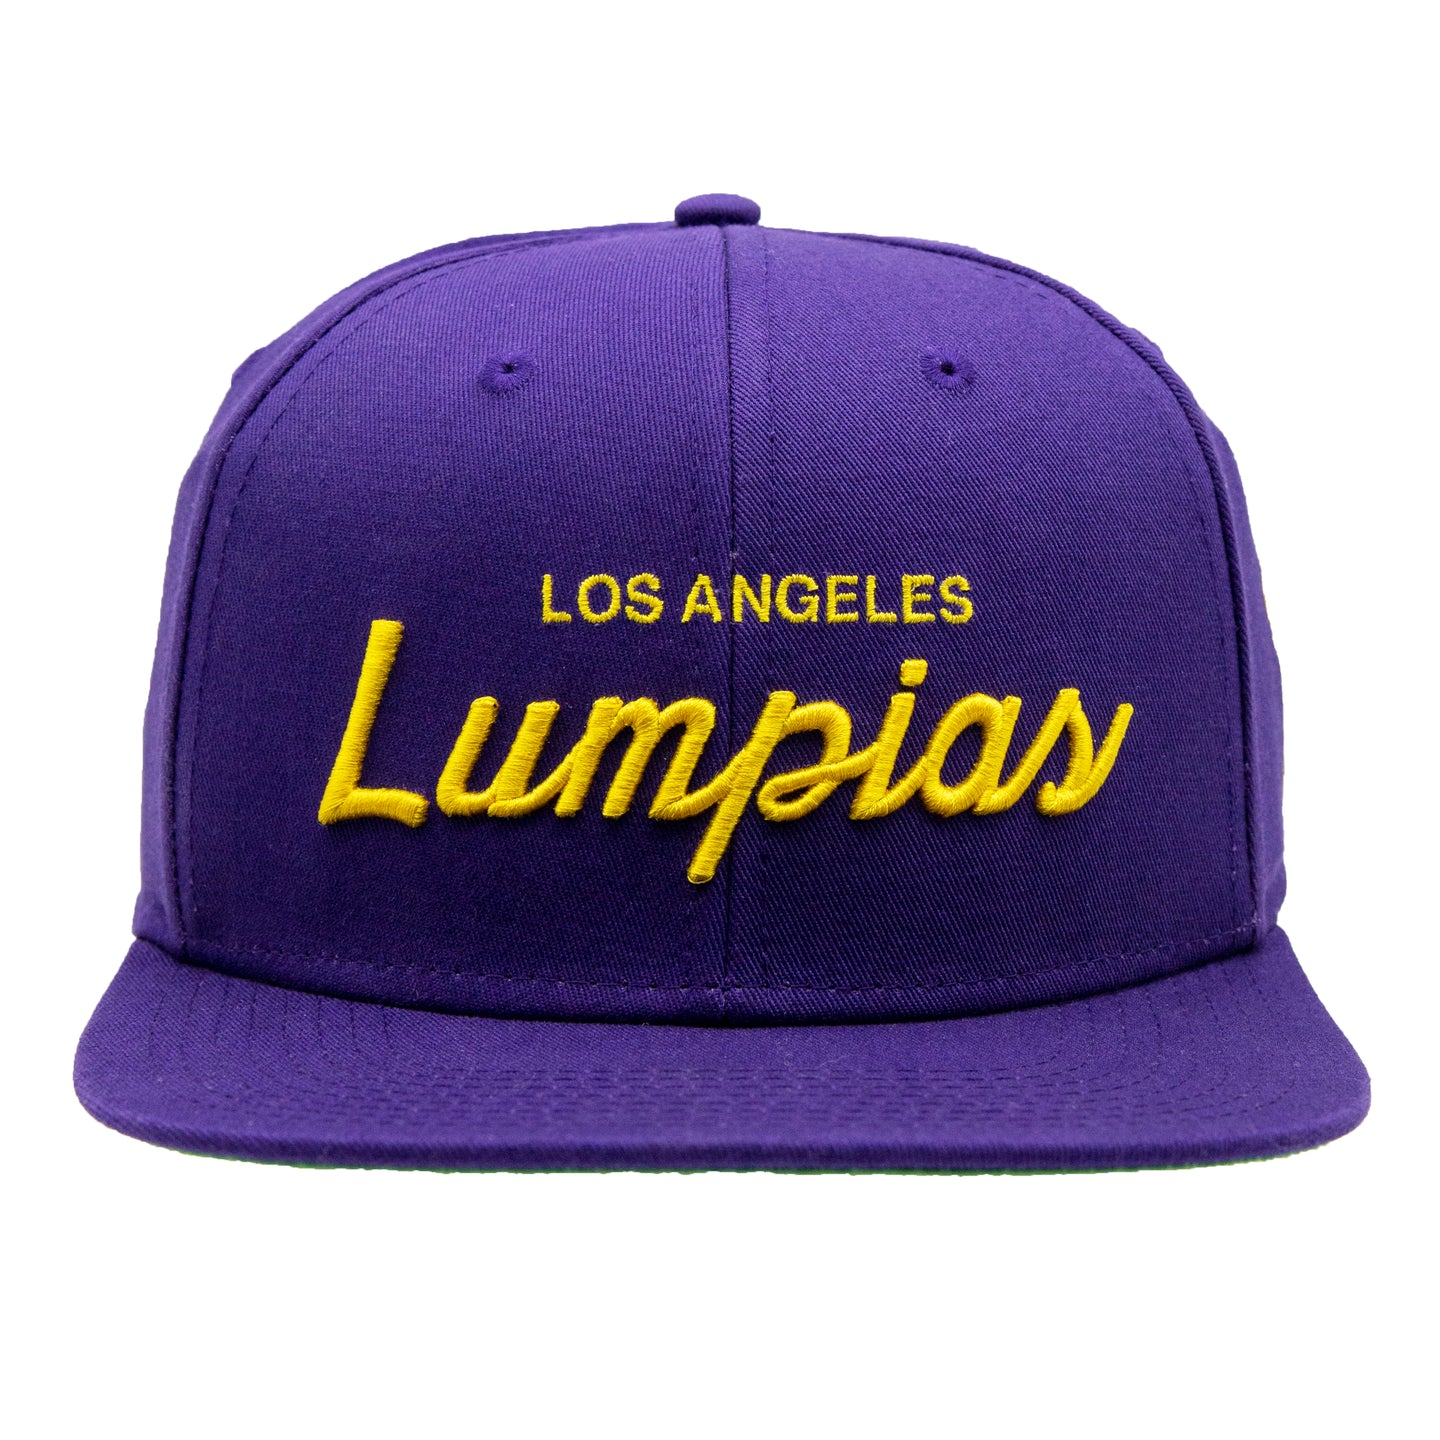 Los Angeles Lumpias Snapback (Lakers Inspired)